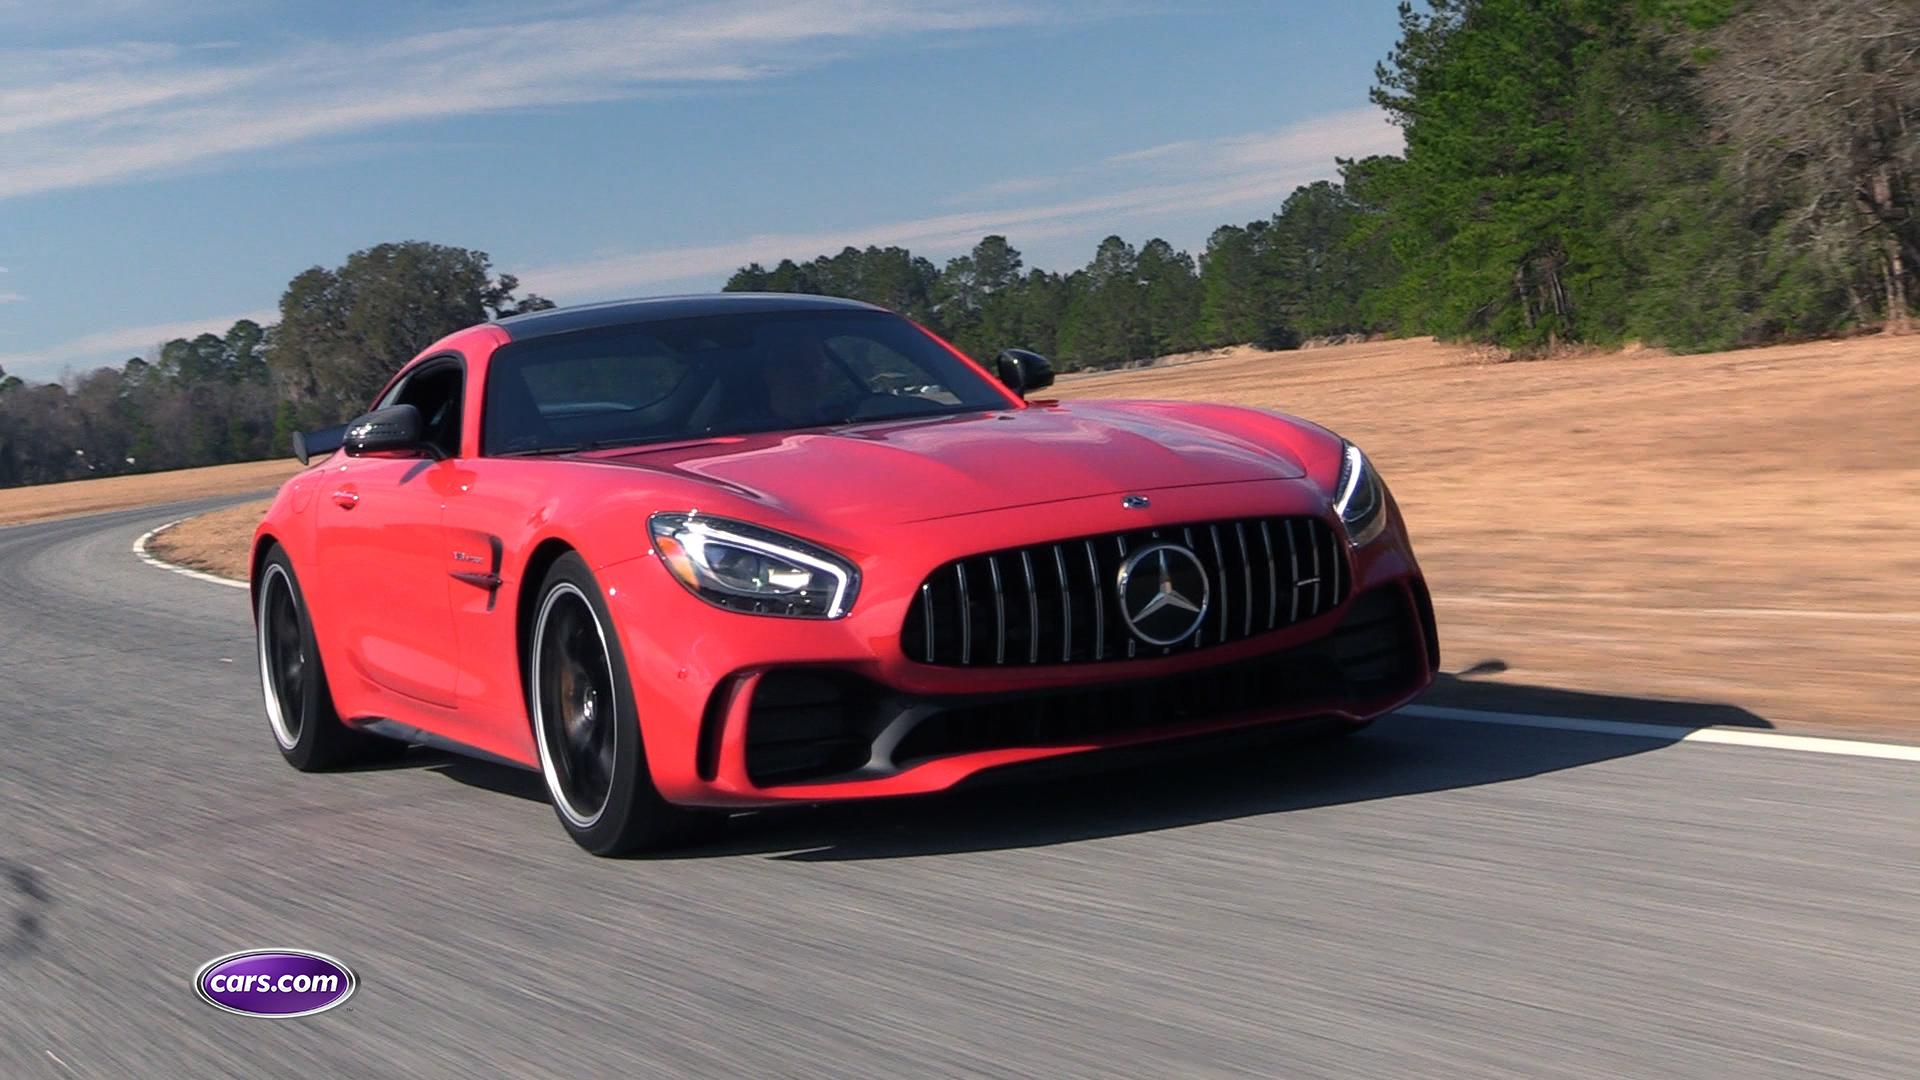 Video: 2018 Mercedes-Benz AMG GT R – Cars.com